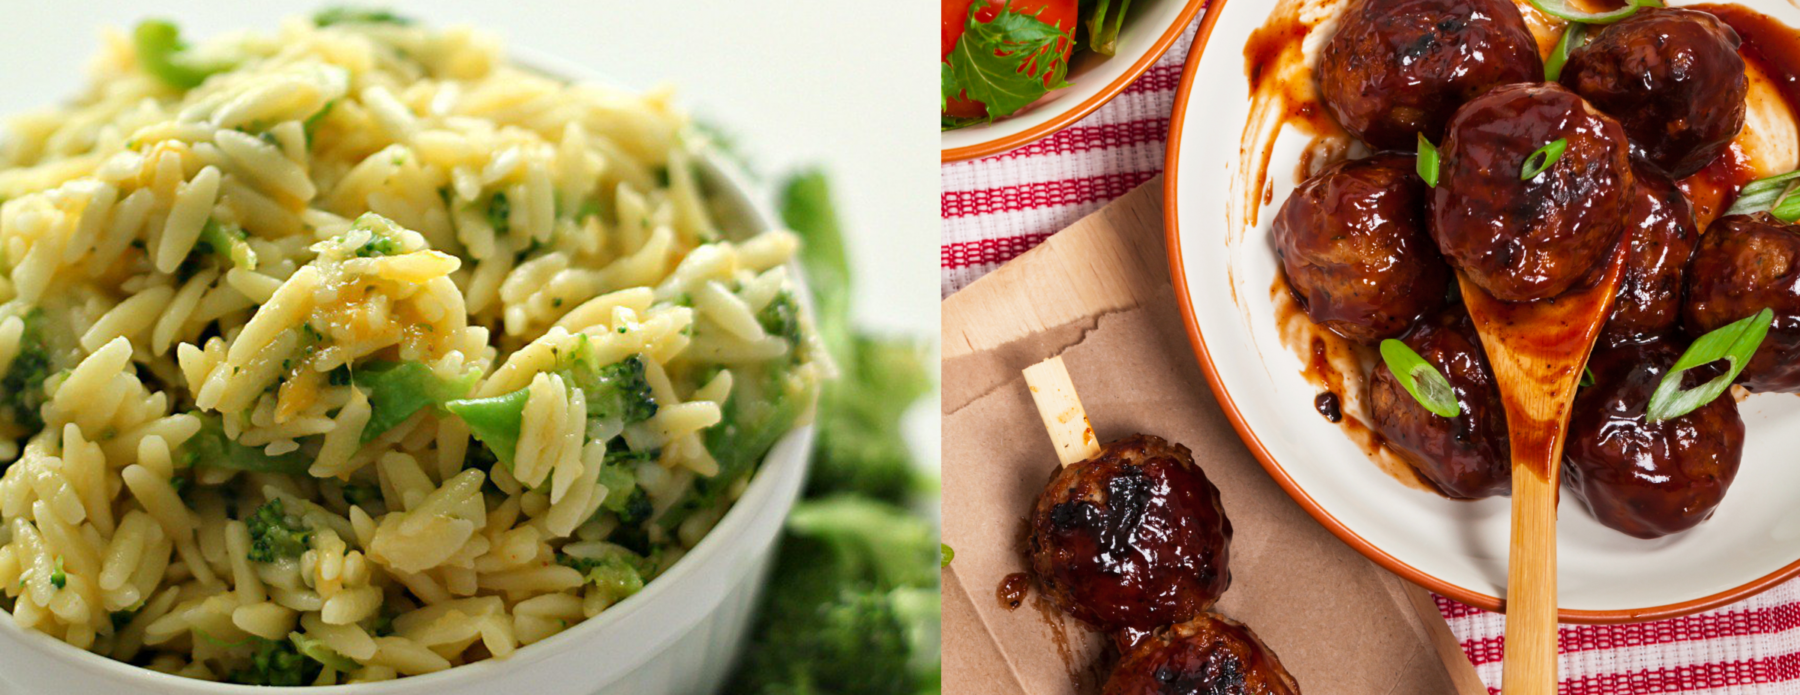 Photo: Cheesy broccoli orzo and barbecue meatballs.